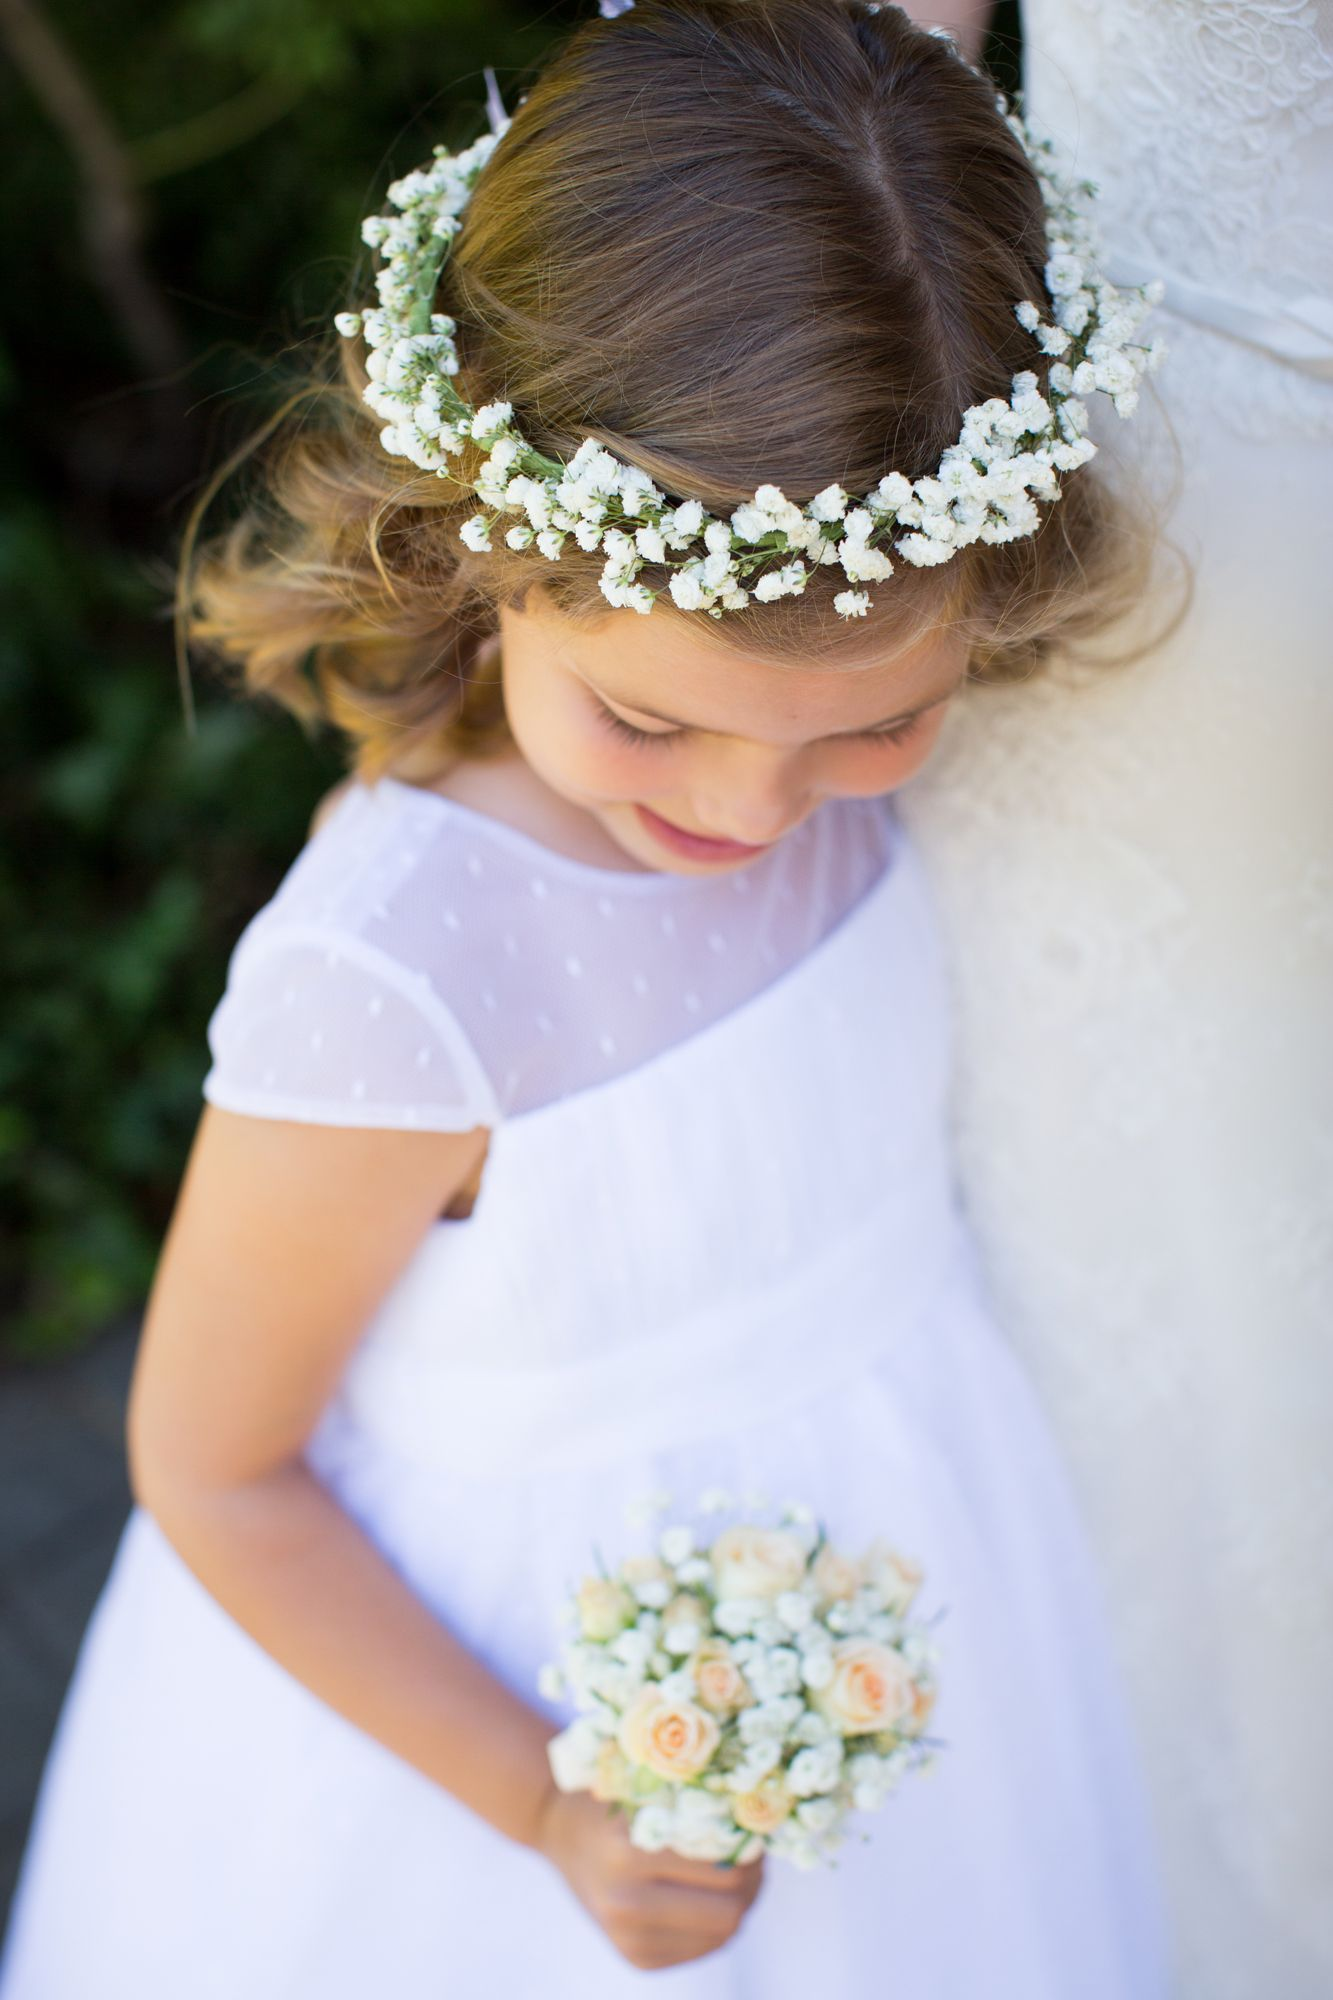 The Smarter Way to Wed | Flower Girls & Ring Bearers ...